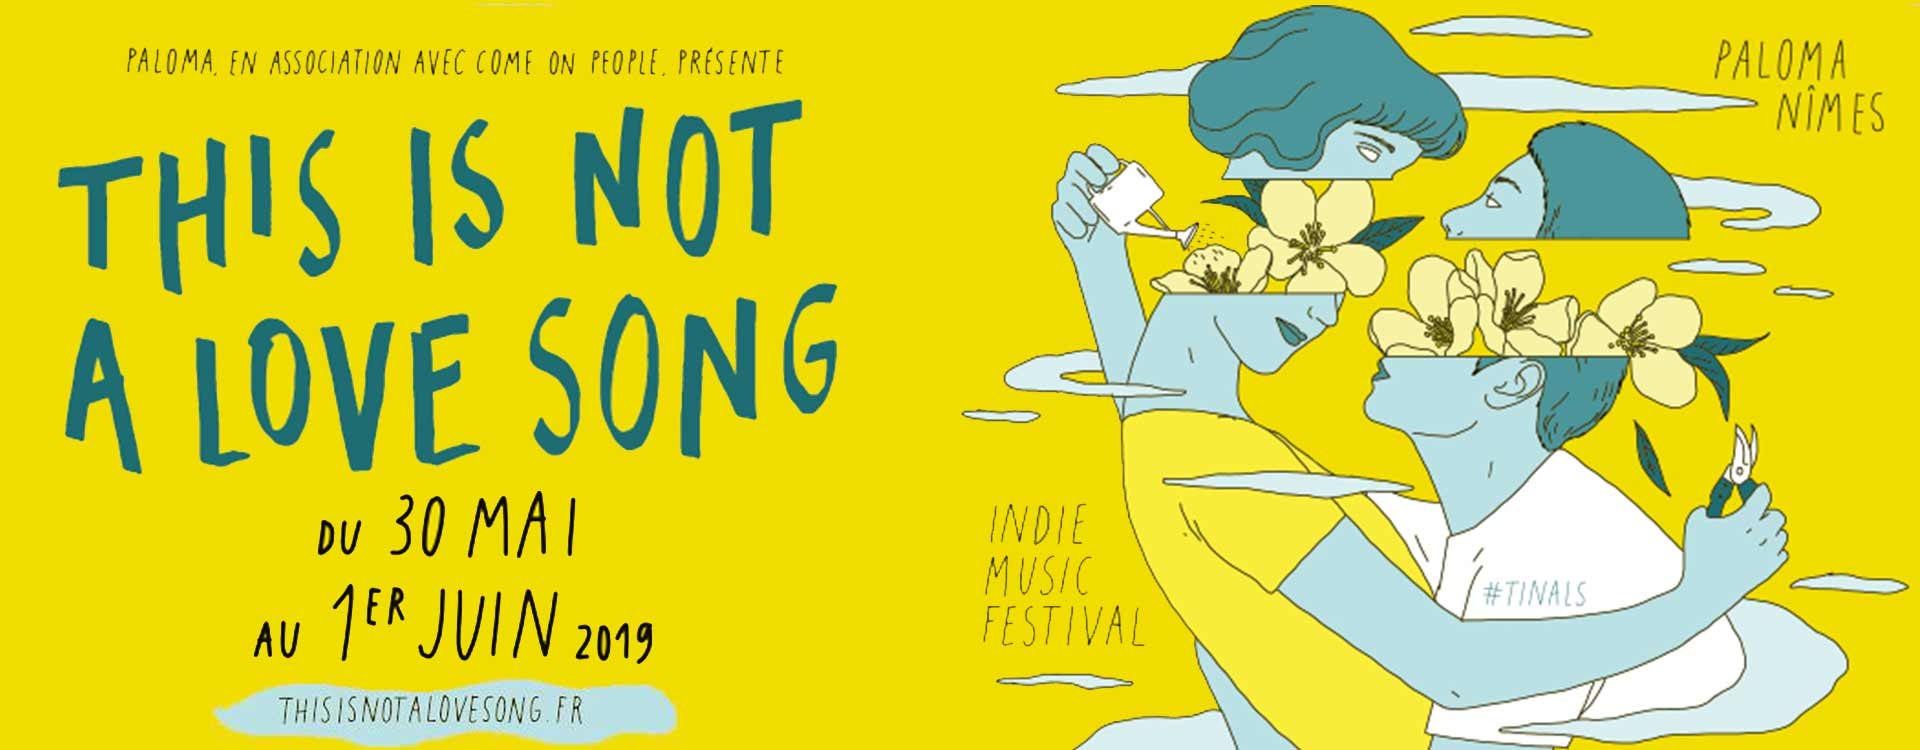 Tinals - This is not a Love Song Festival - Edition 2019 - Nimes